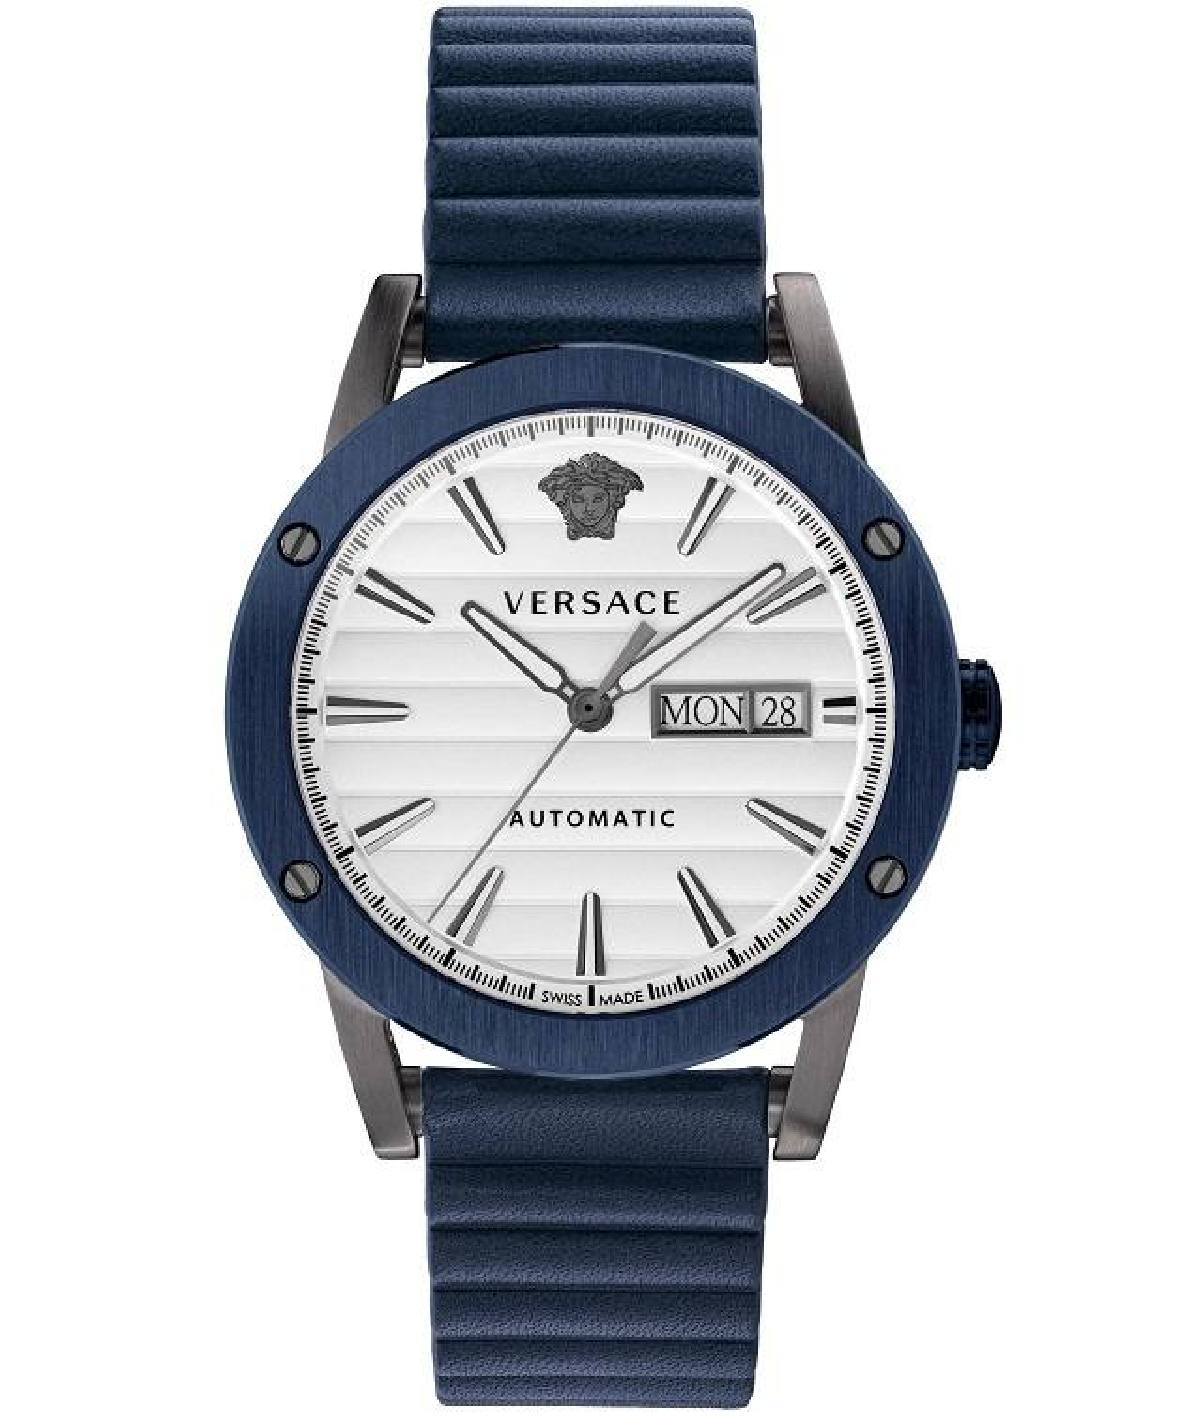 Versace Theros Day Date Blue PVD - Watches & Crystals